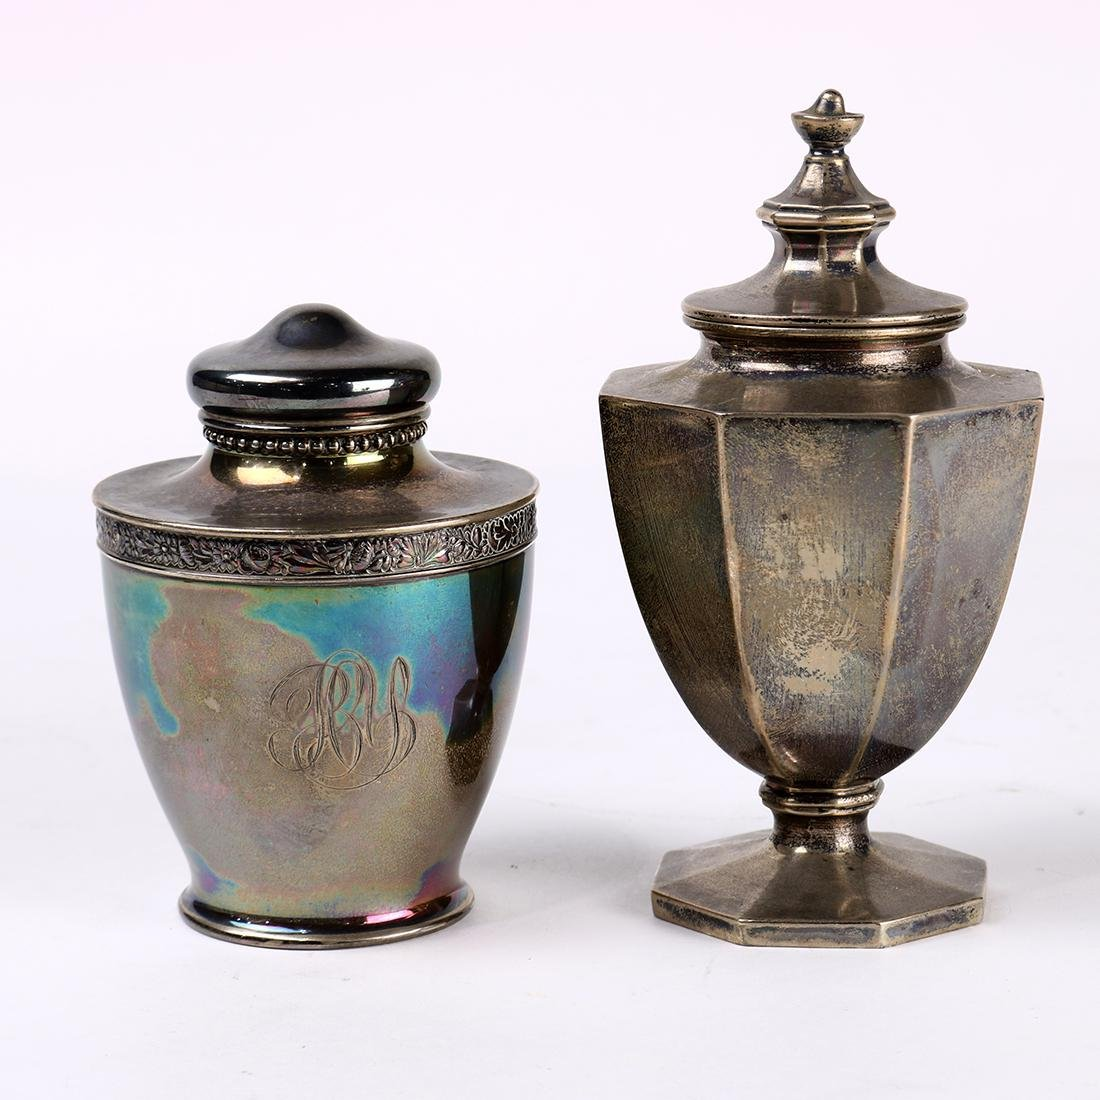 (lot of 2) Gorham sterling tea canisters, consisting of